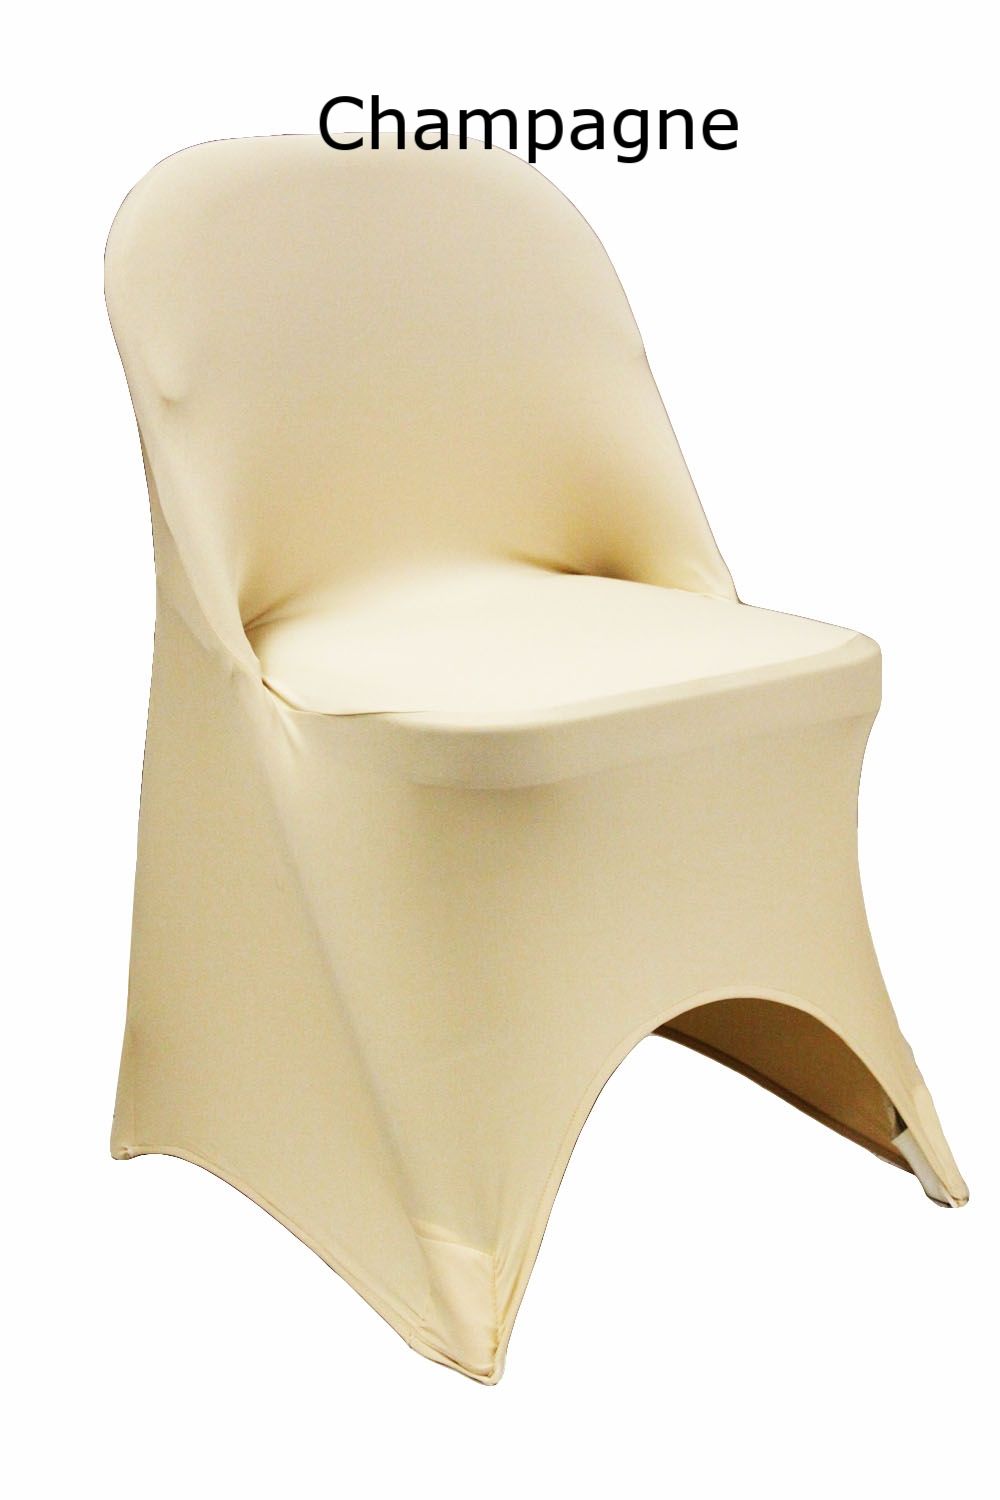 Chair Cover Stretch Champagne.jpg